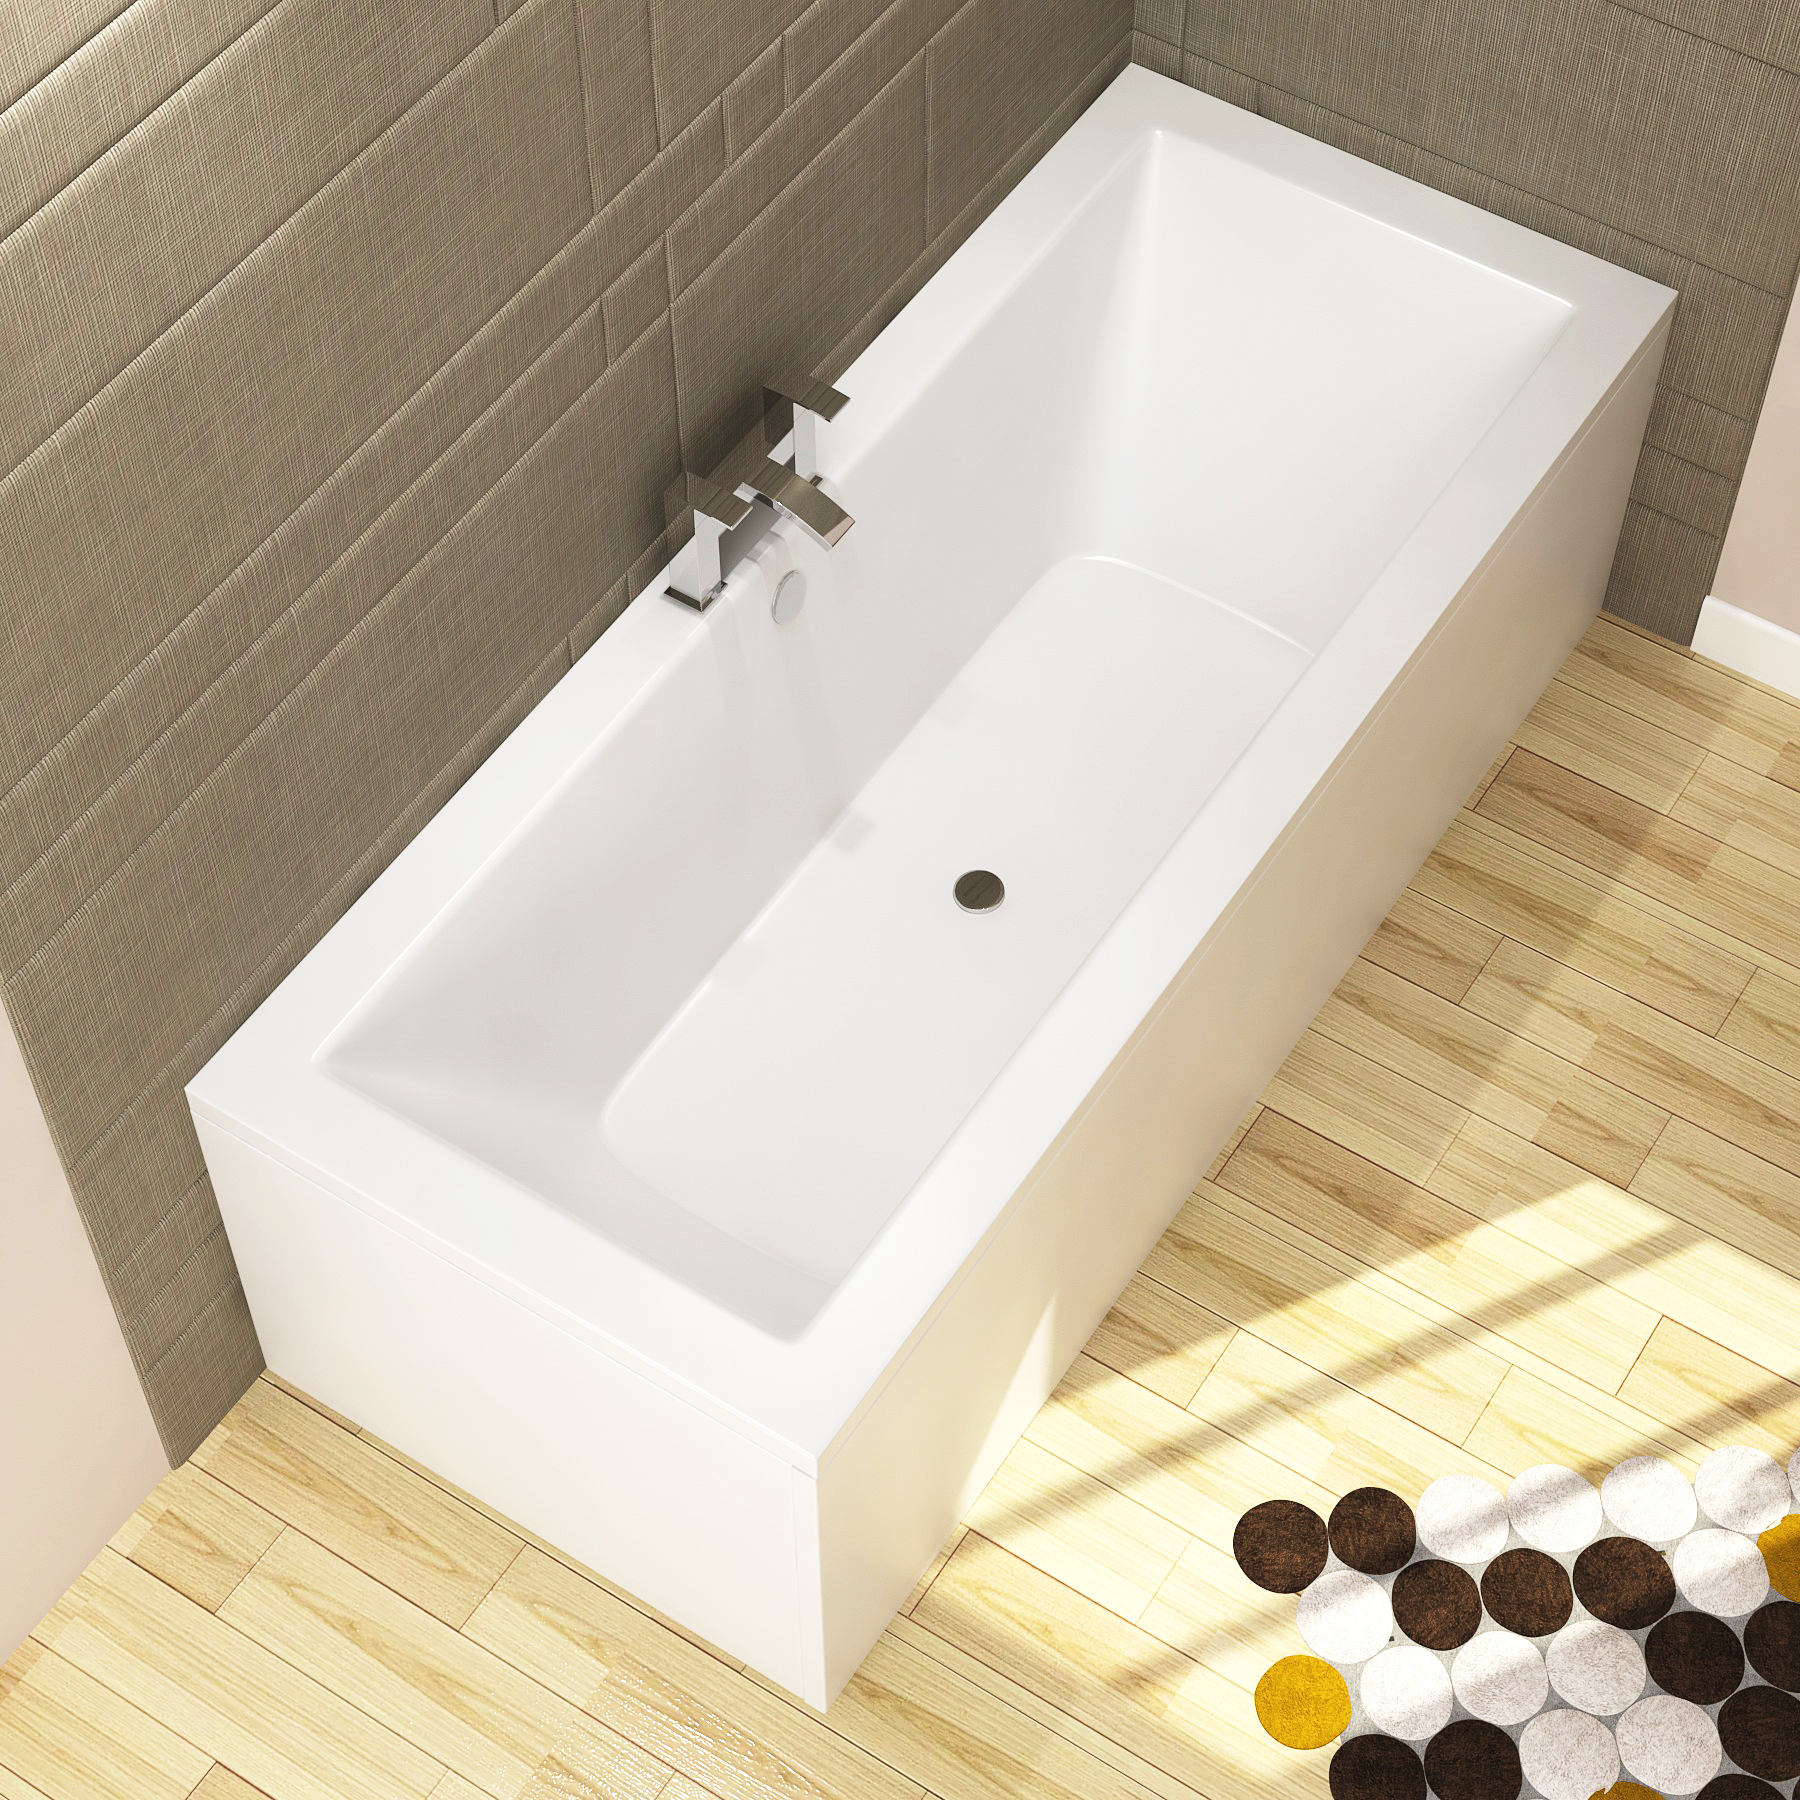 Top Consideration When Choosing Your 1800mm Shower Bath Material